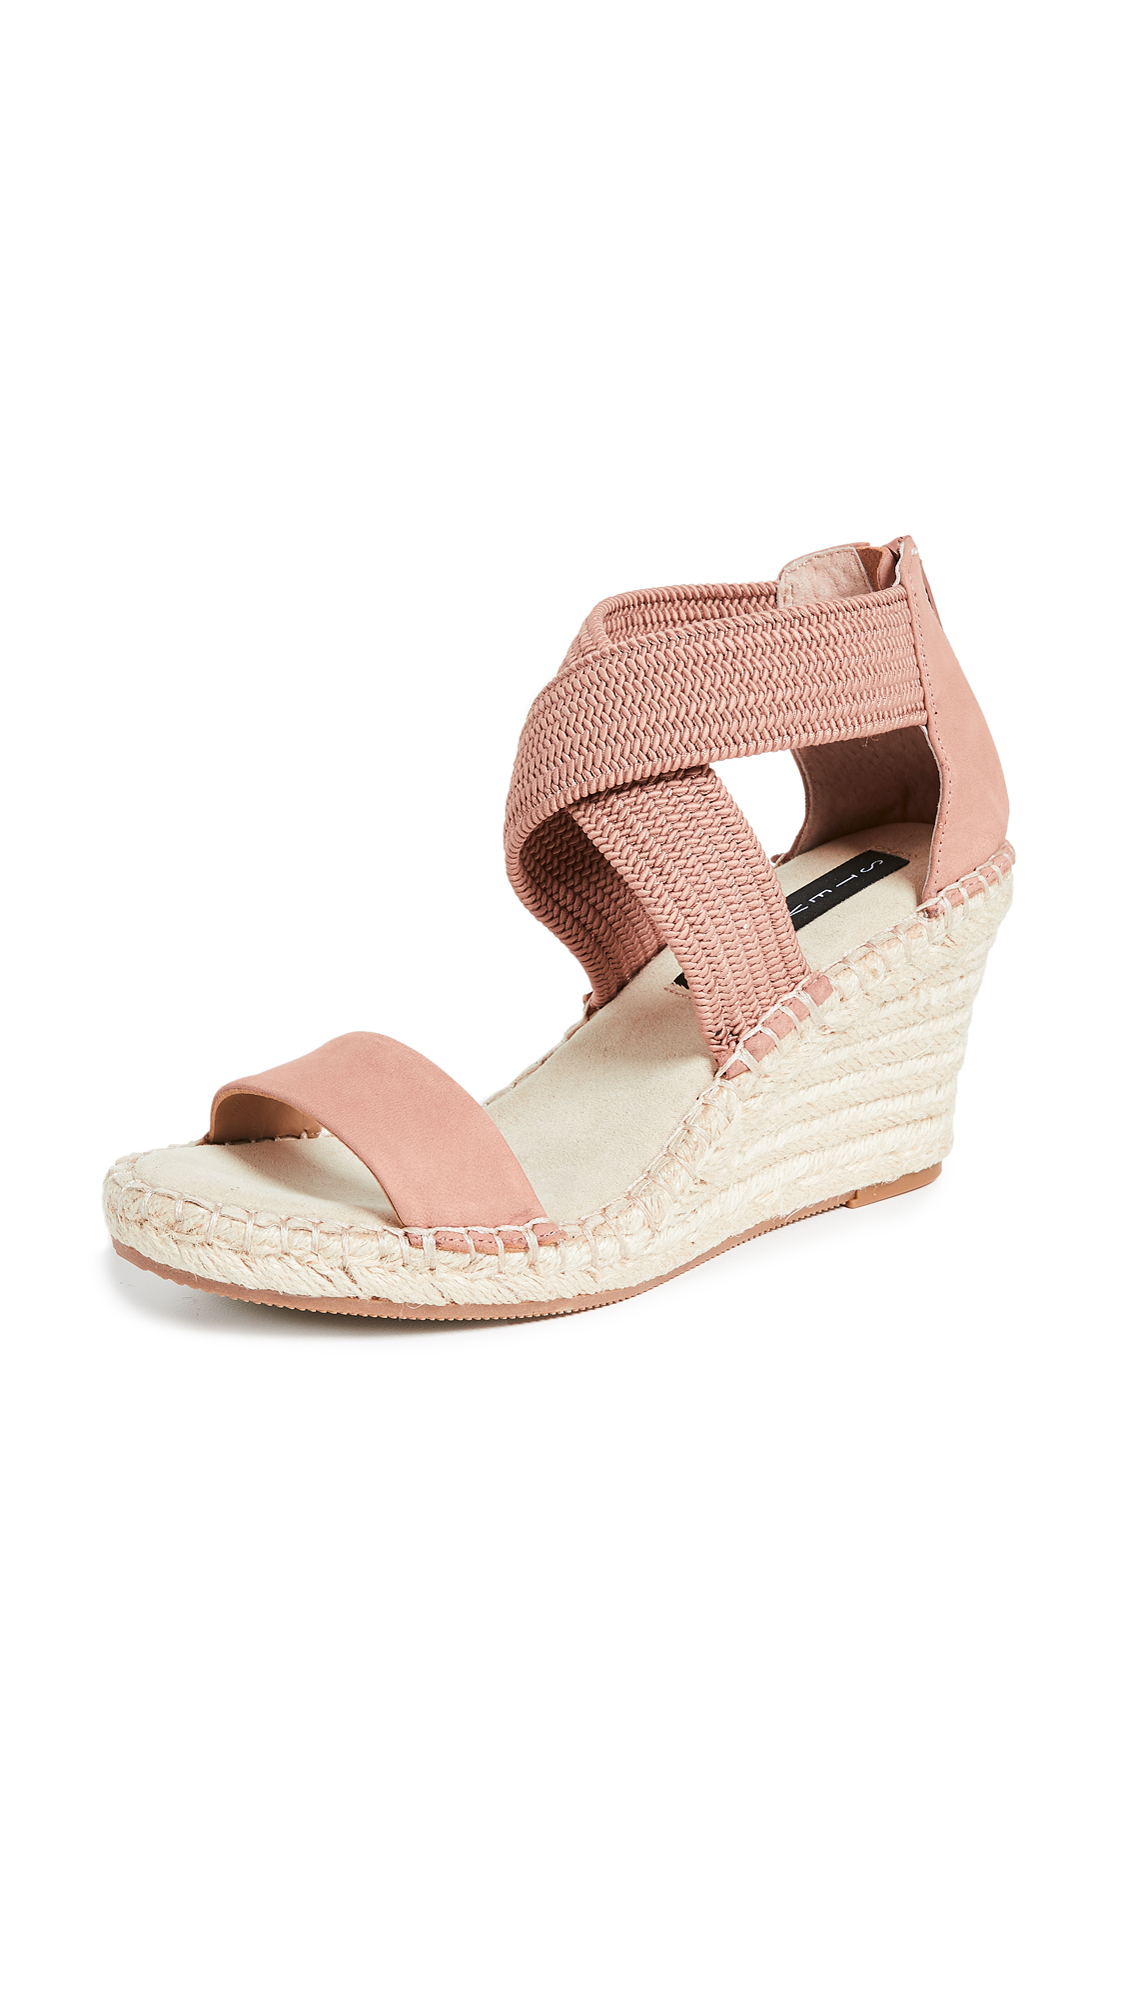 Steven Excited Wedge Espadrilles - Blush